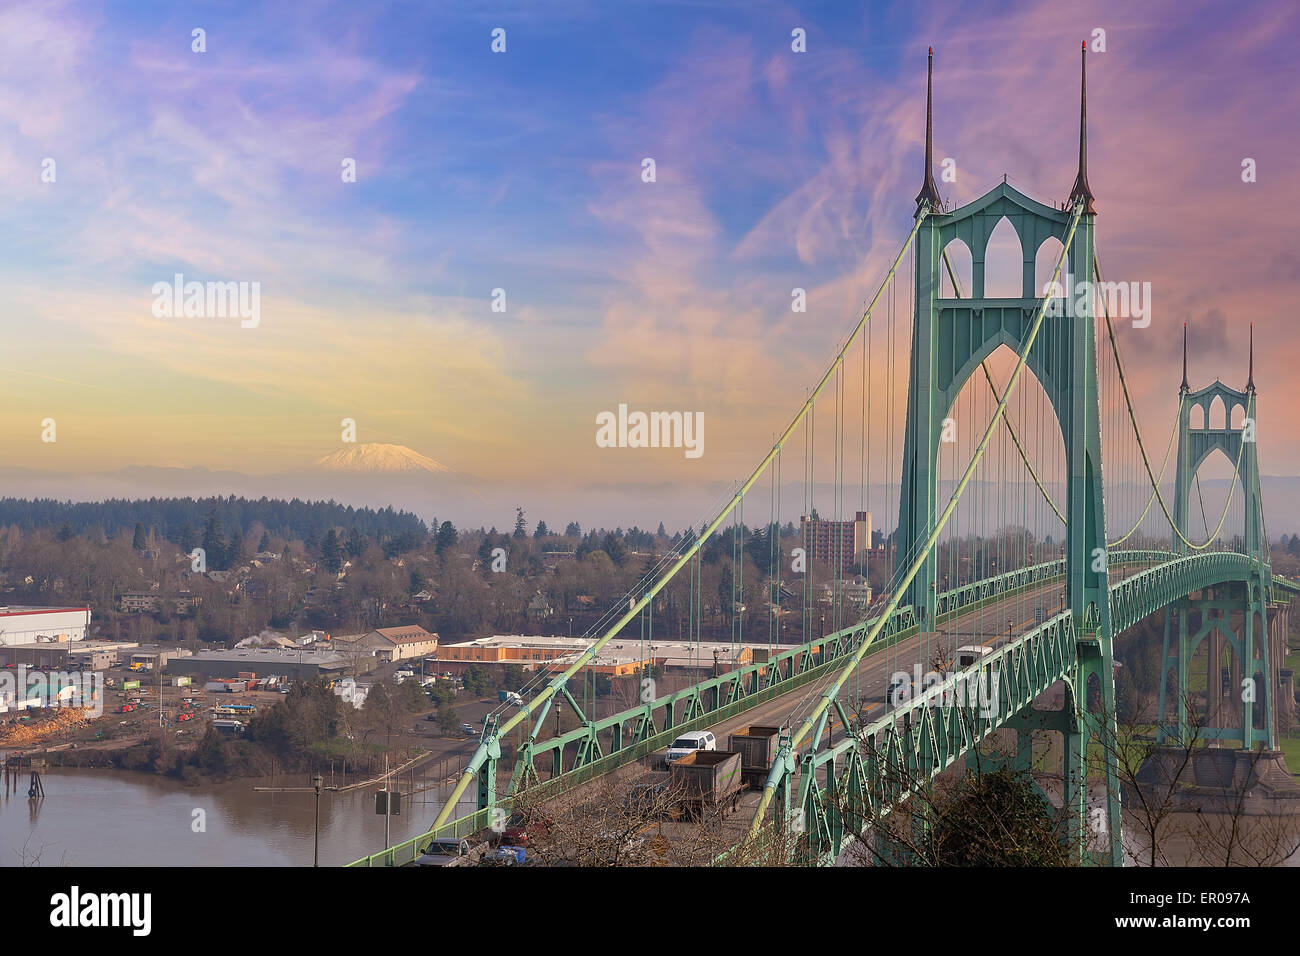 St Johns Bridge in Portland Oregon Over Willamette River with Mt St Helens View - Stock Image